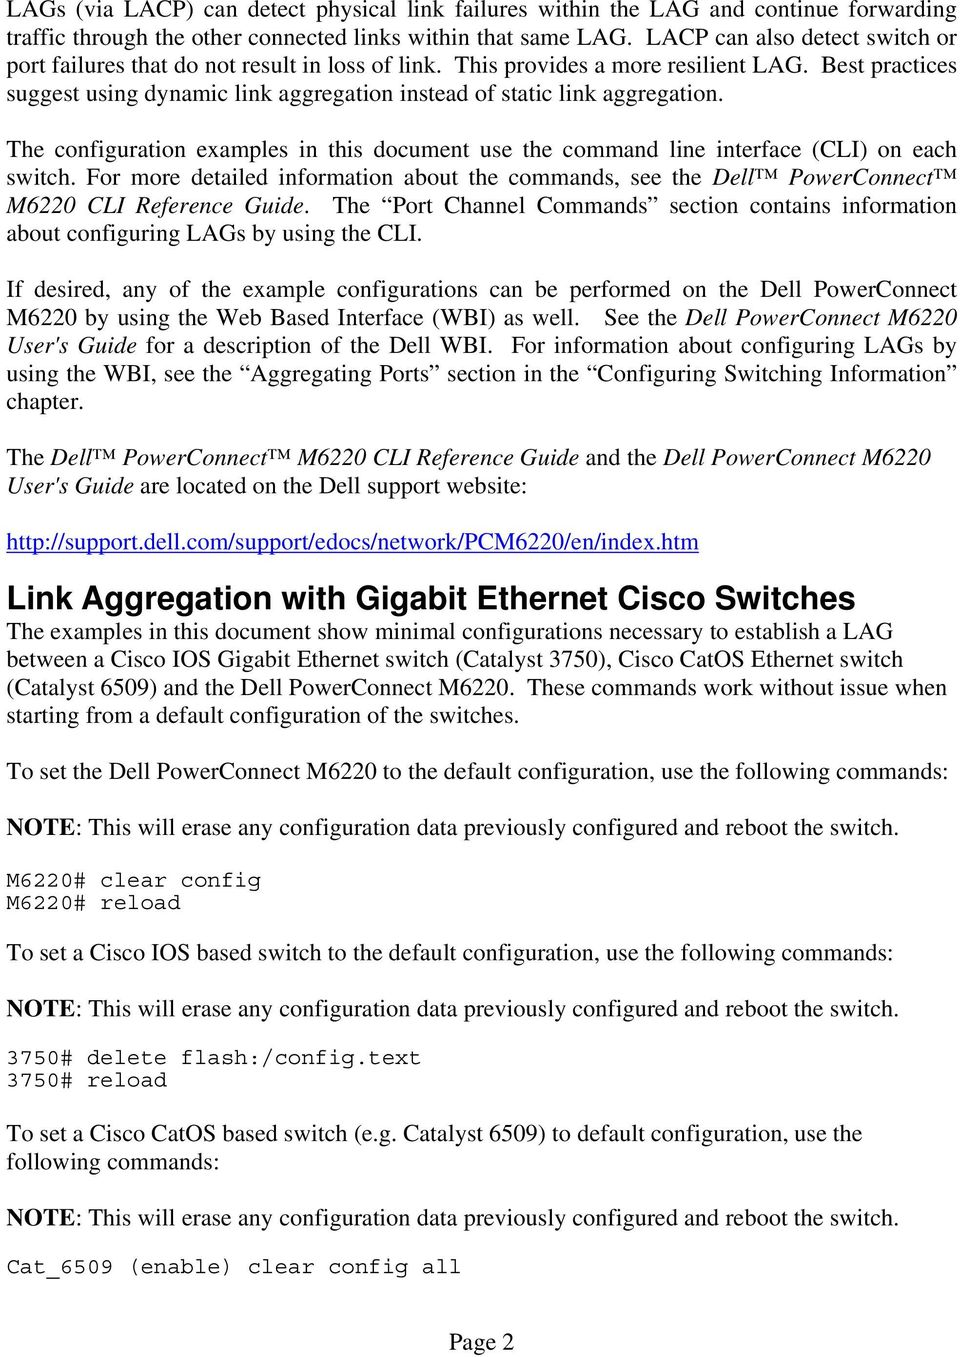 Link Aggregation Interoperability of the Dell PowerConnect M6220